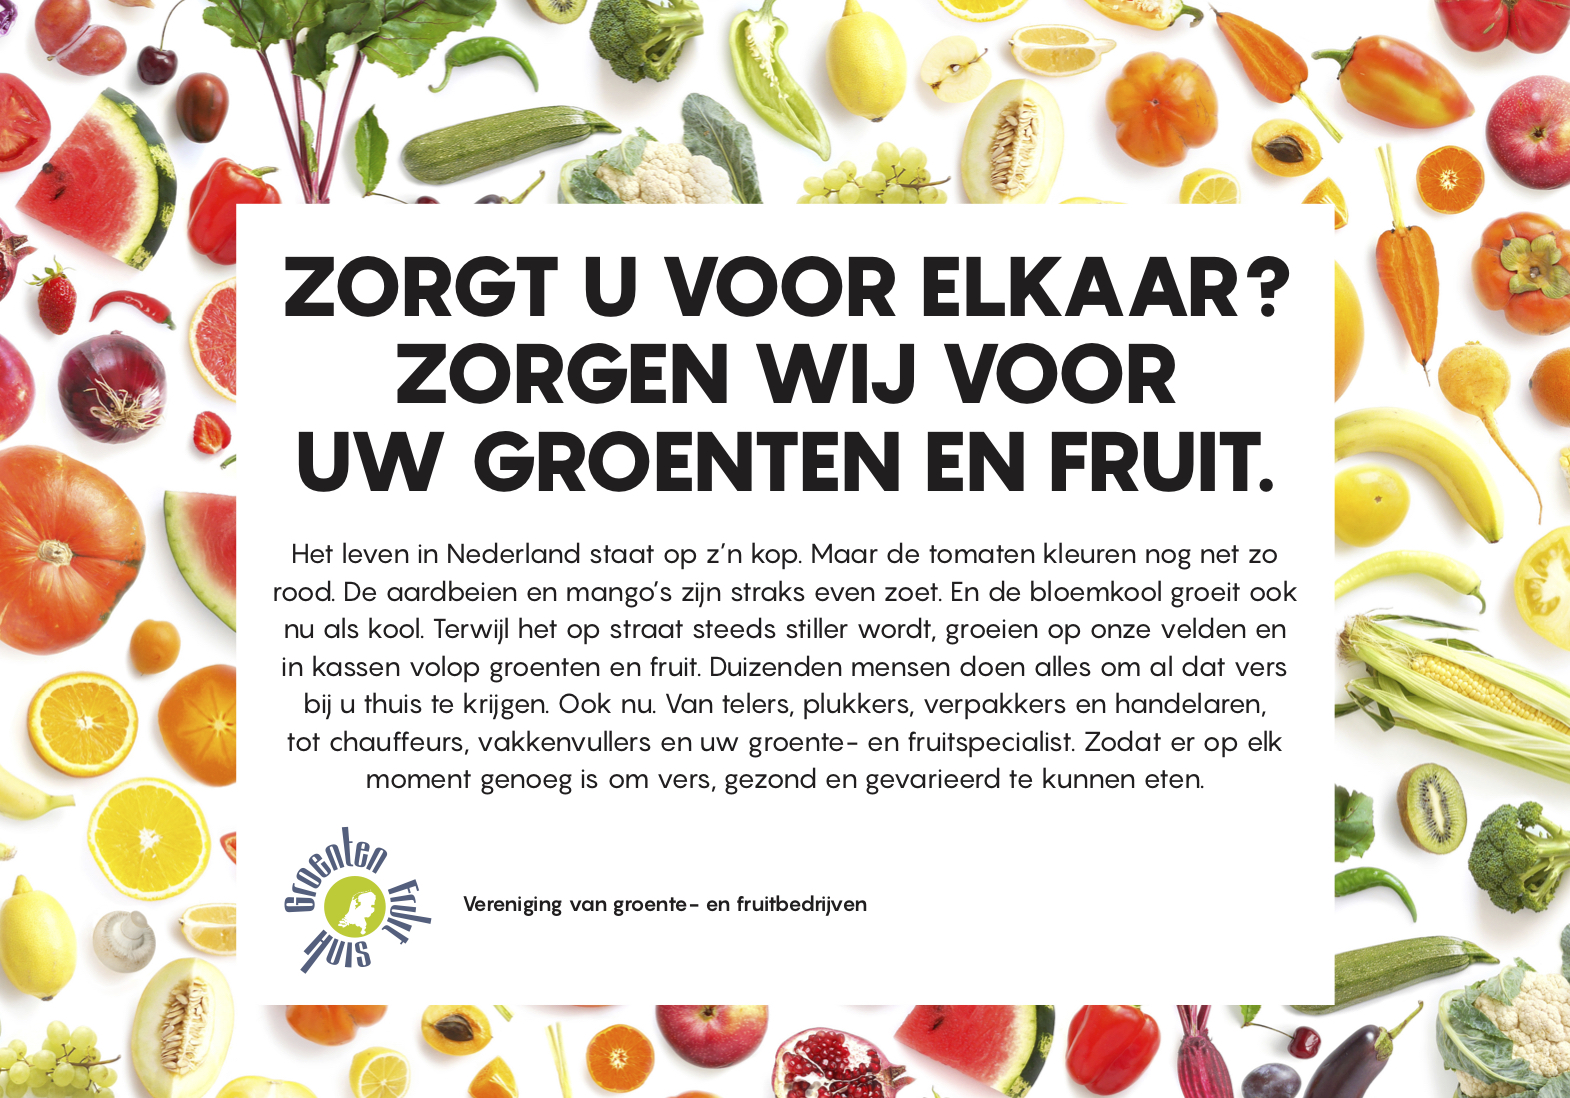 Advertentie in AD